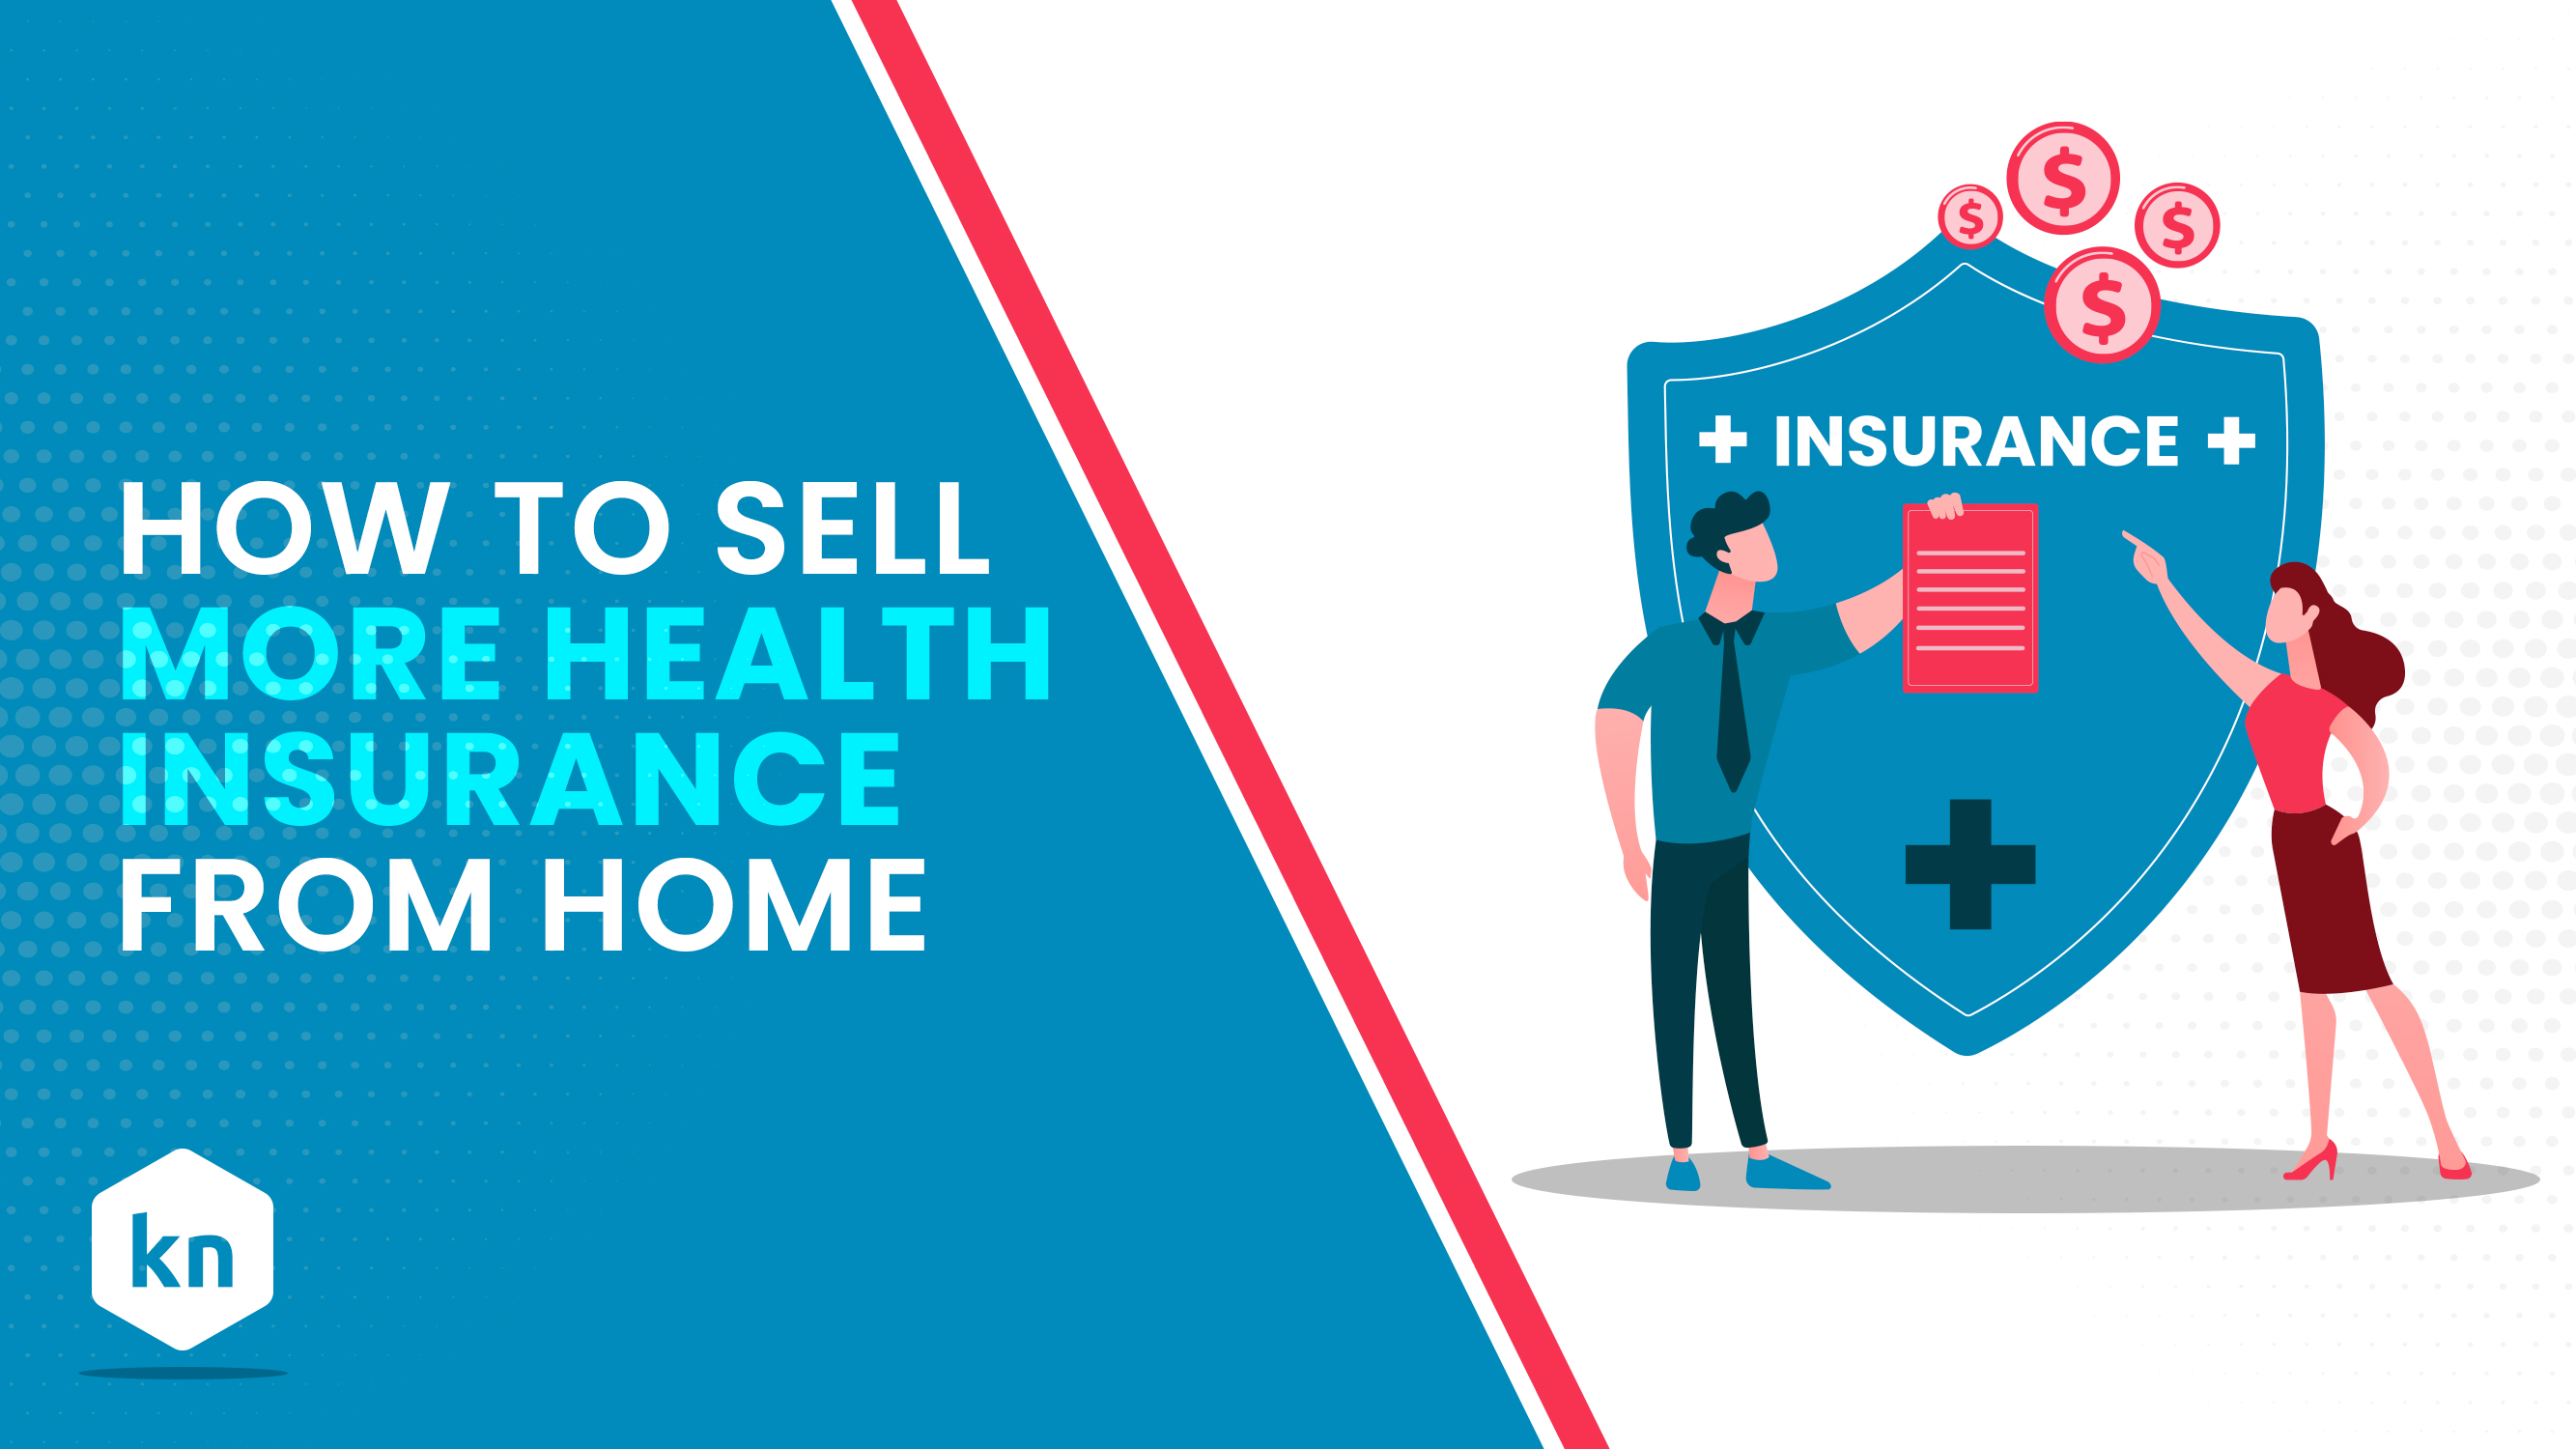 How To Sell More Health Insurance From Home